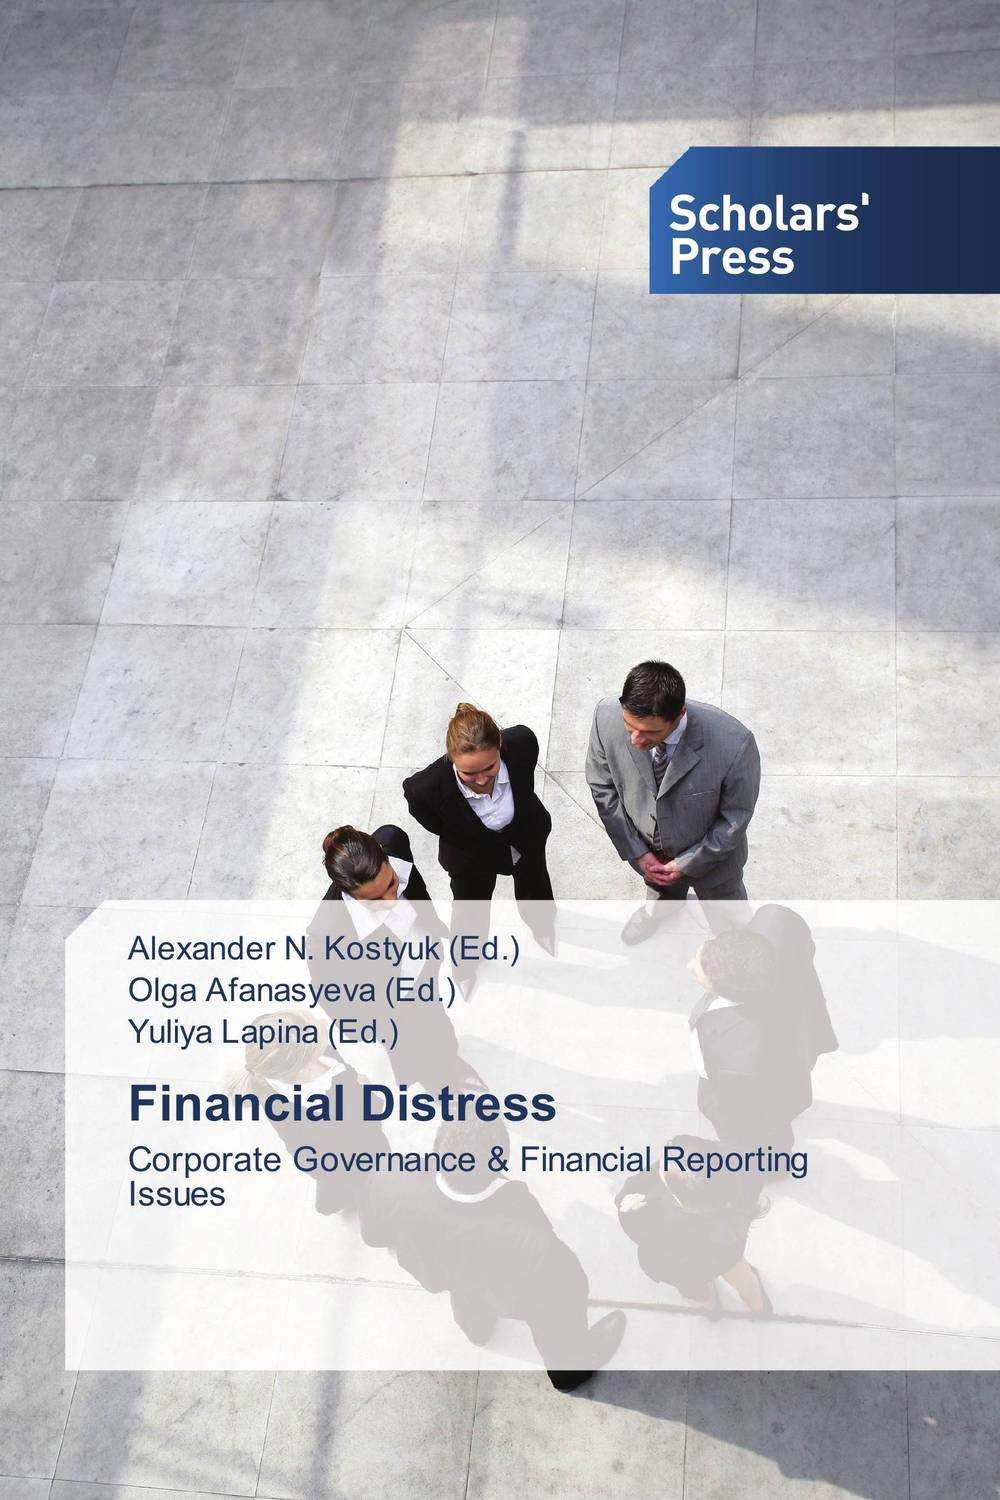 Financial Distress from financial crisis to economic and political distress